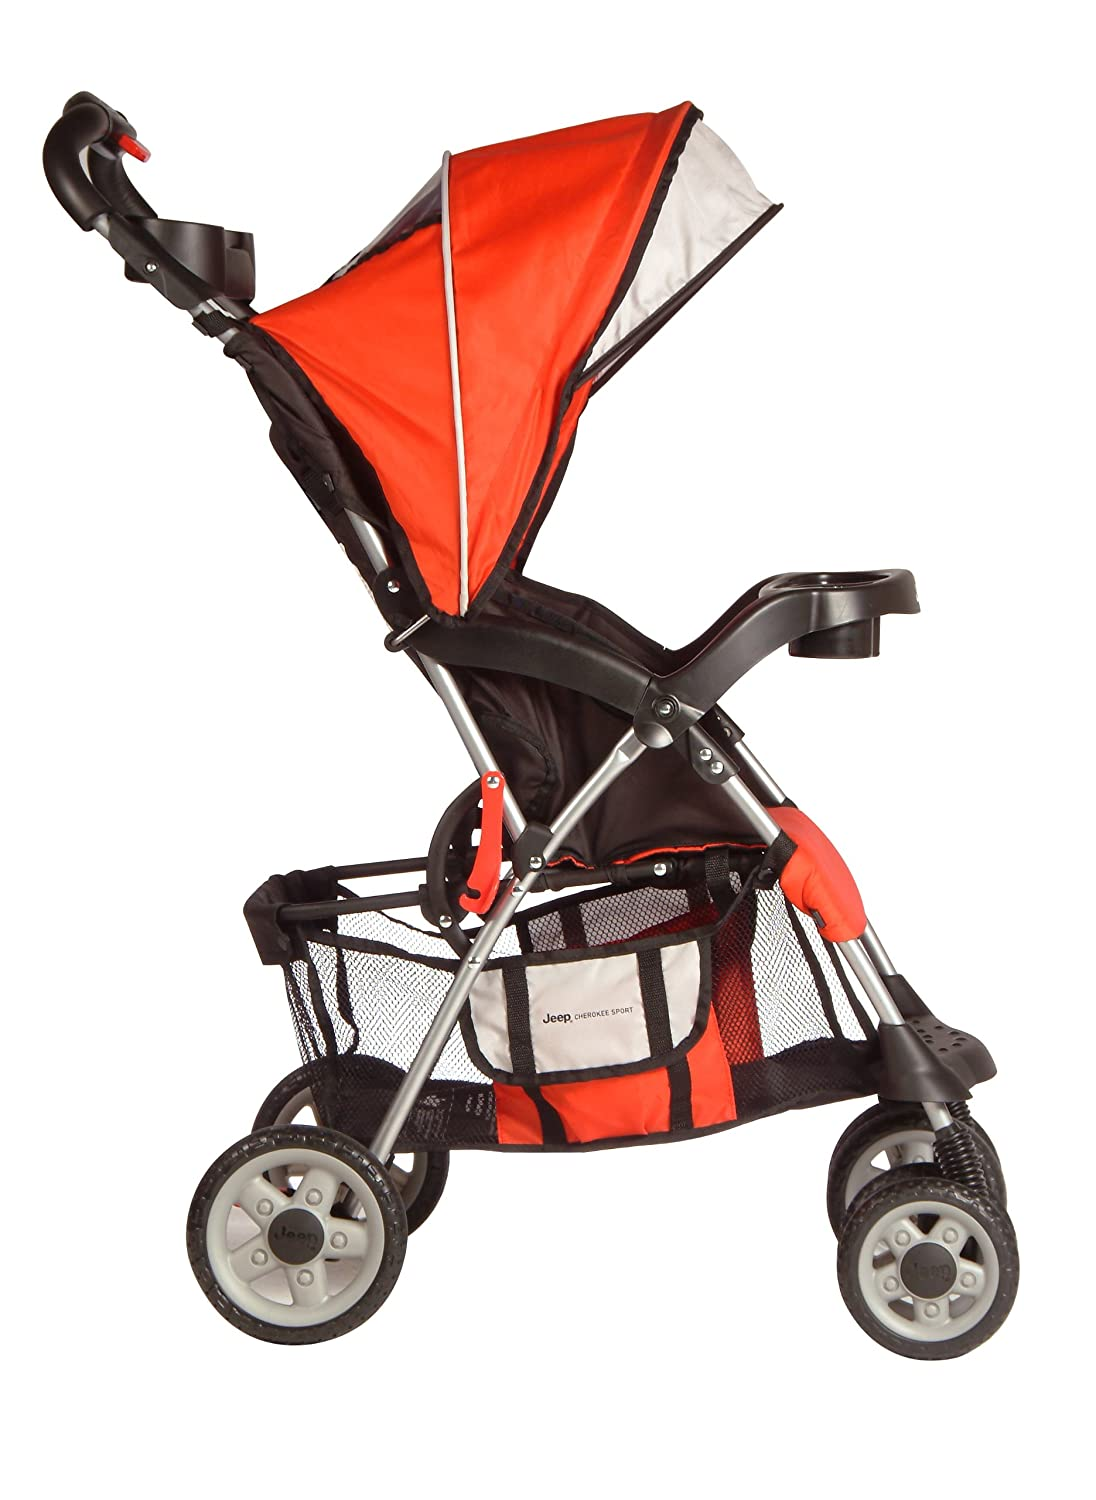 Superb Amazon.com : Jeep Cherokee Sport Stroller, React (Older Version)  (Discontinued By Manufacturer) : Standard Baby Strollers : Baby